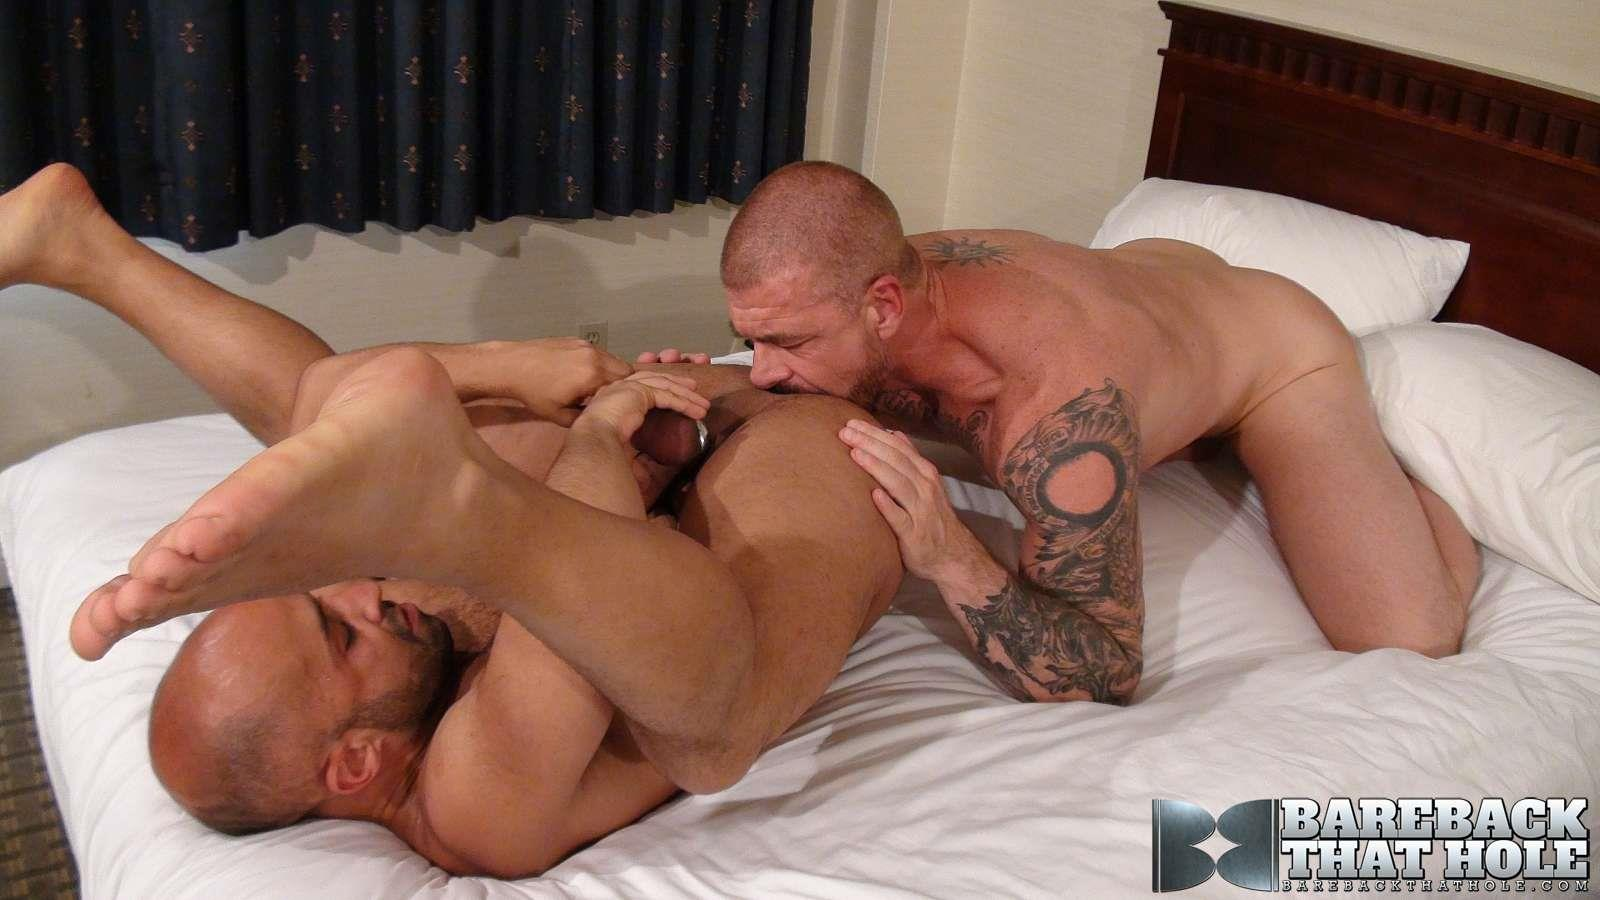 Bareback-That-Hole-Bareback-That-Hole-Rocco-Steele-and-Igor-Lukas-Huge-Cock-Barebacking-A-Tight-Ass-Amateur-Gay-Porn-04 Rocco Steele Tearing Up A Tight Ass With His Huge Cock